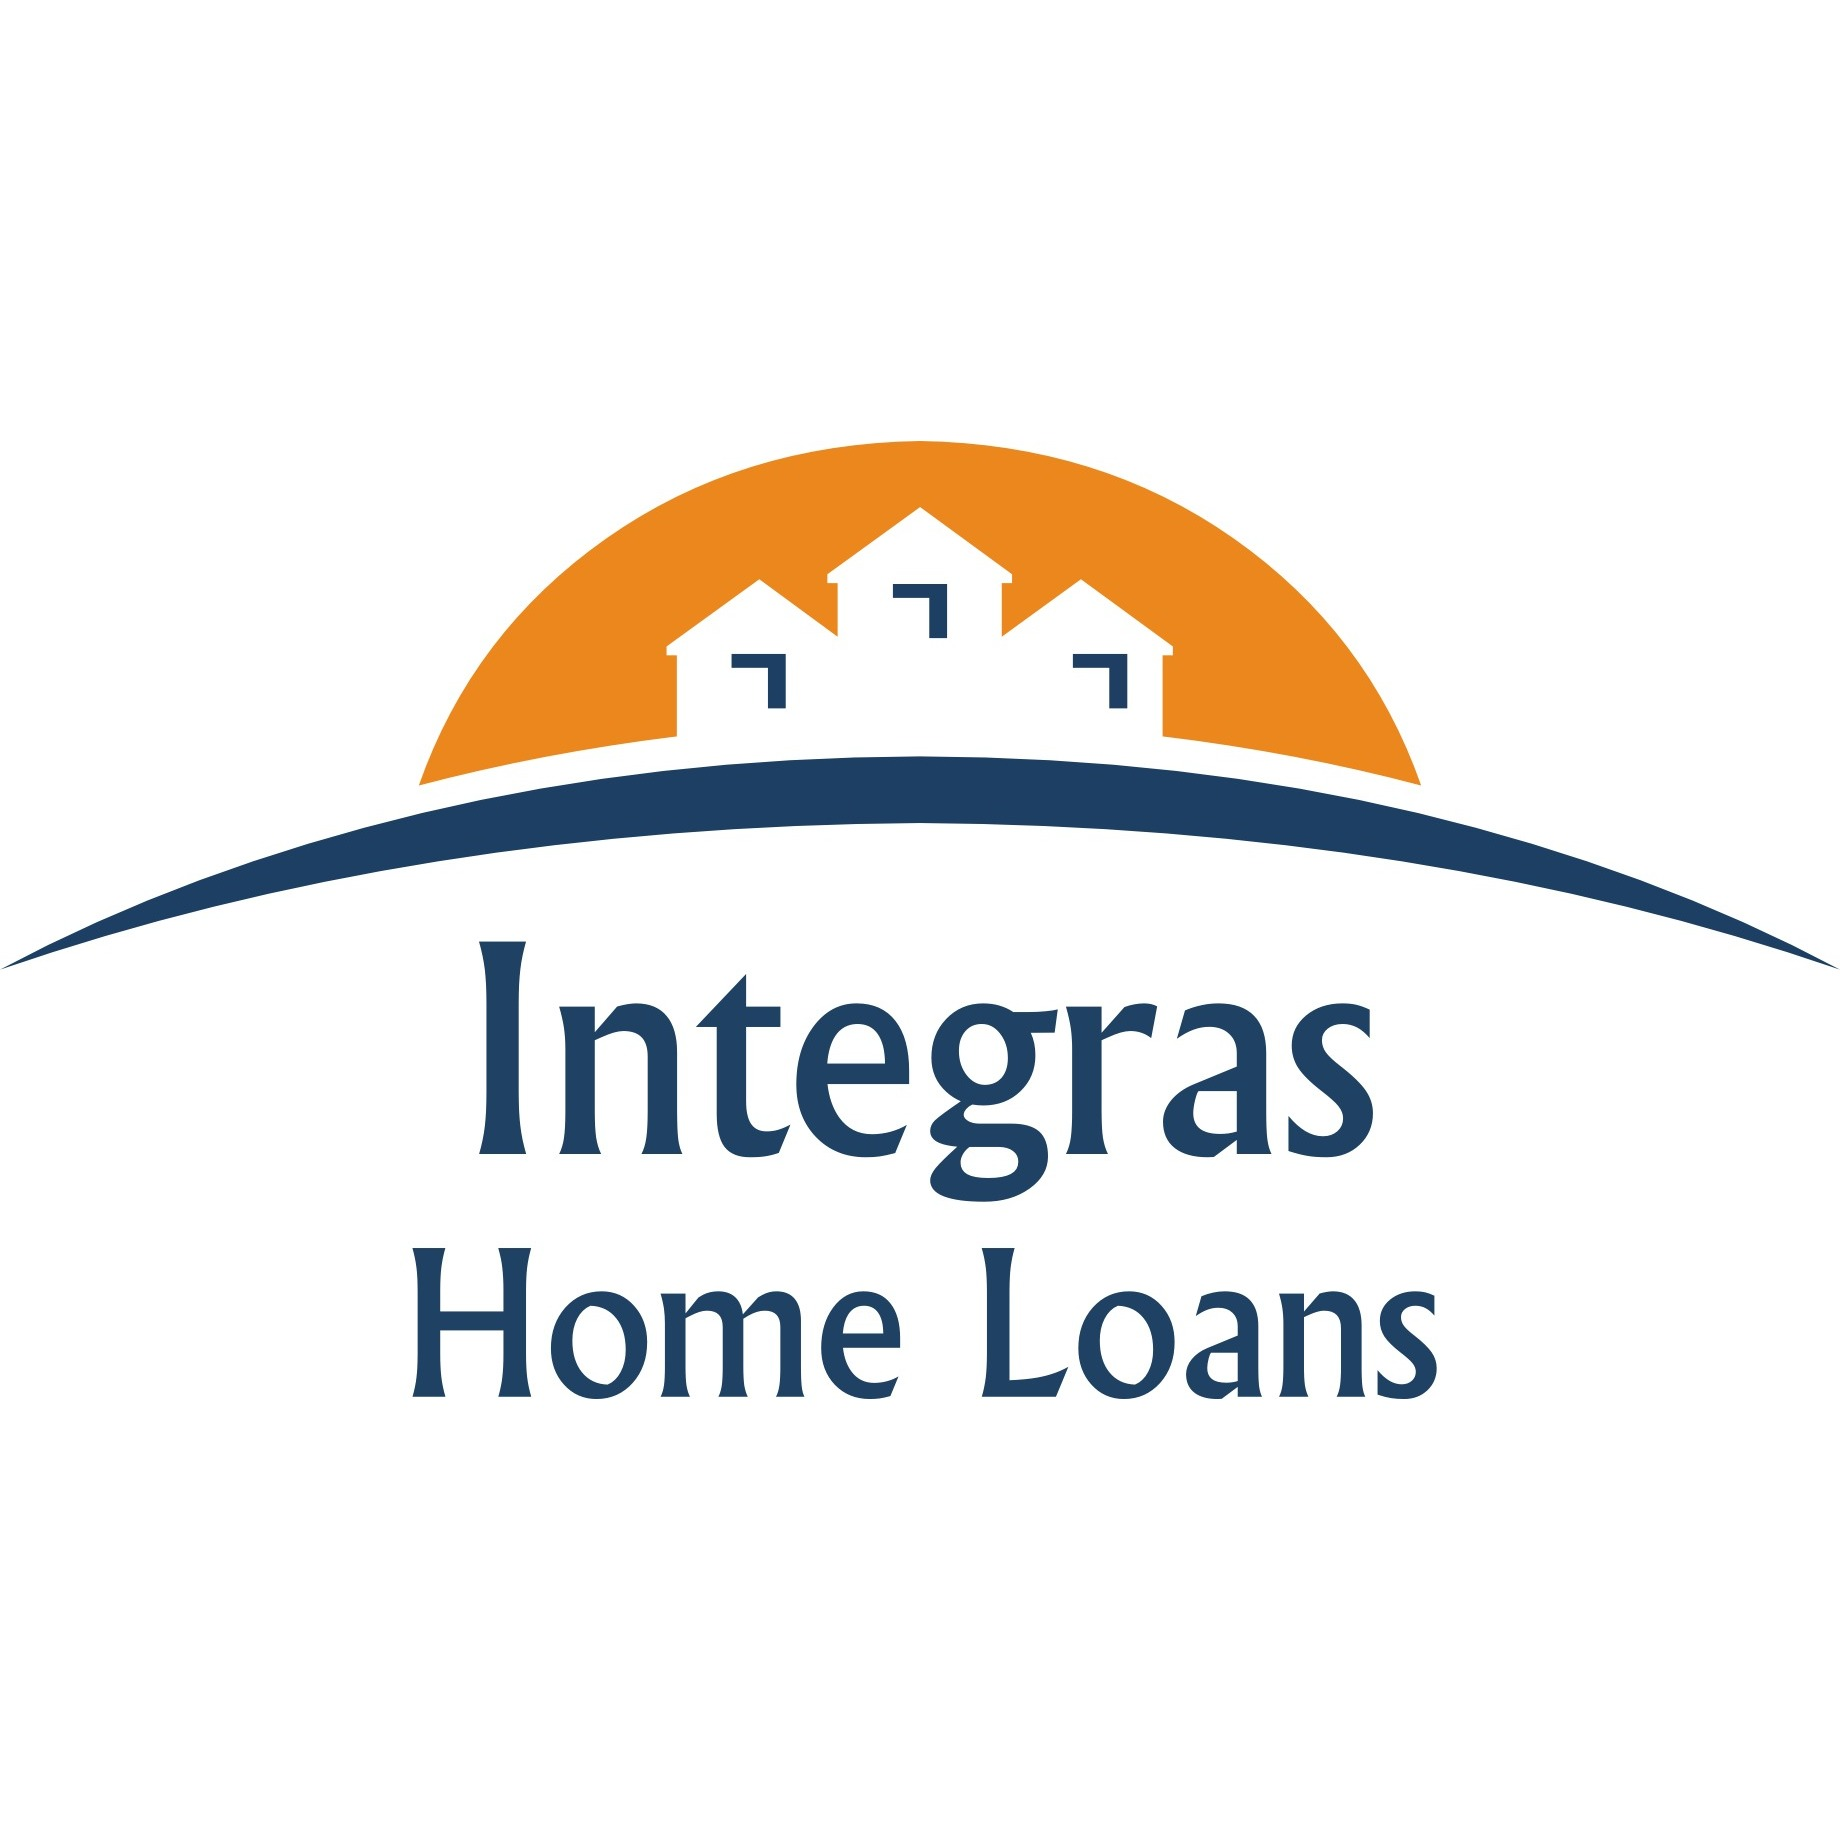 Integras Home Loans